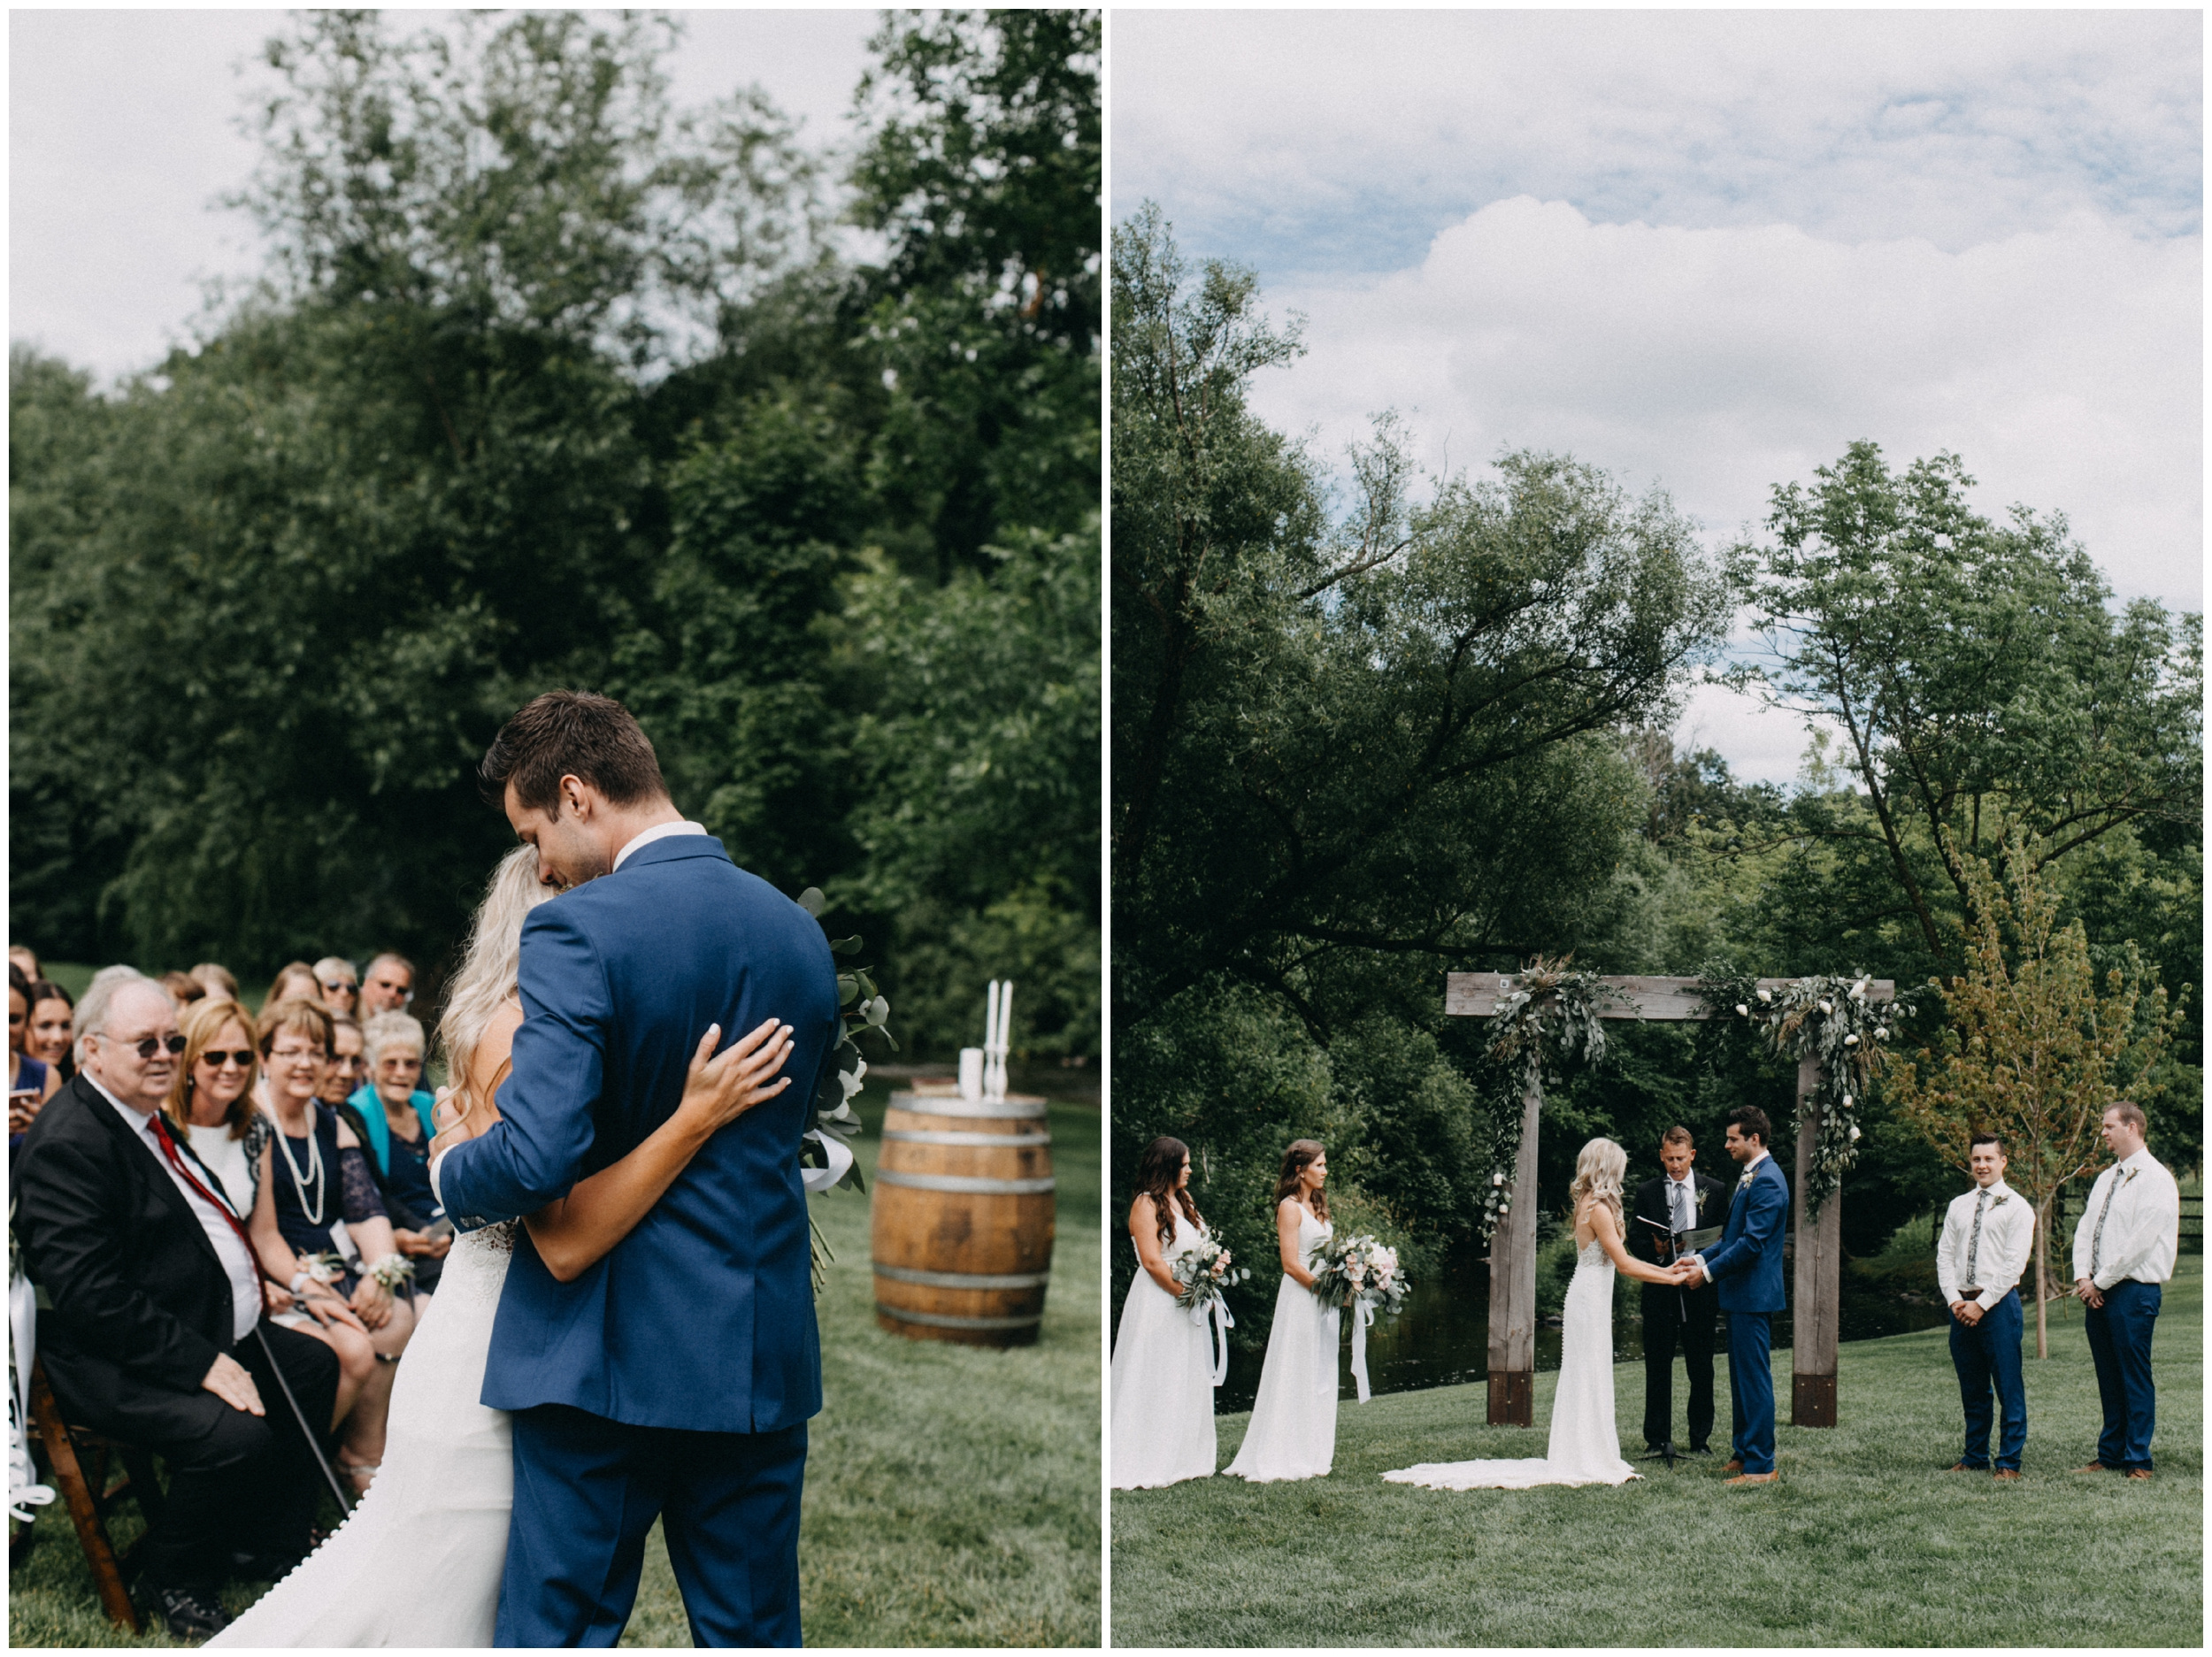 Outdoor summer wedding ceremony at Creekside Farm in Rush City, MN